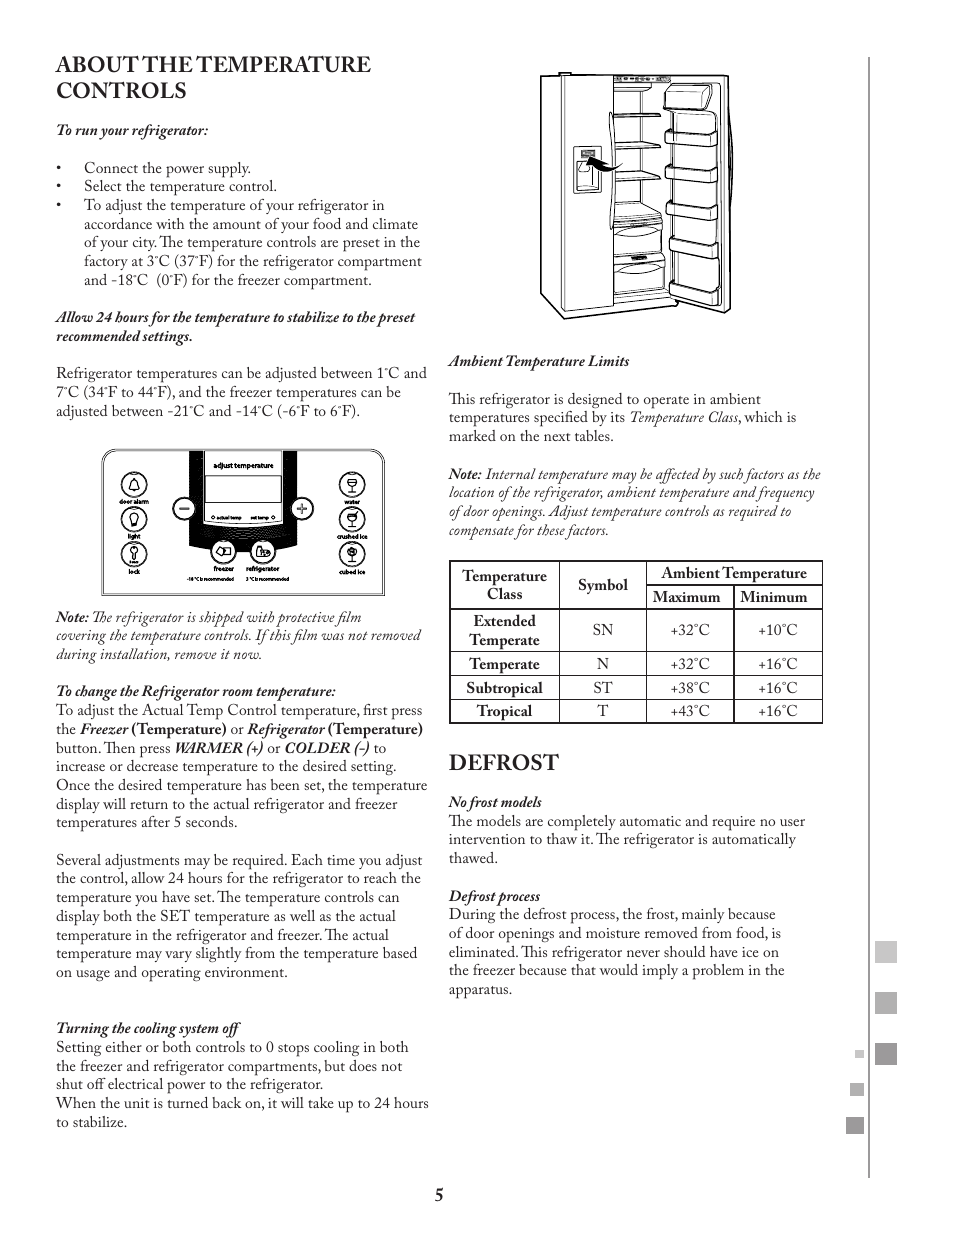 About the temperature controls, Defrost | Fagor FQ8965X User Manual | Page  5 / 122